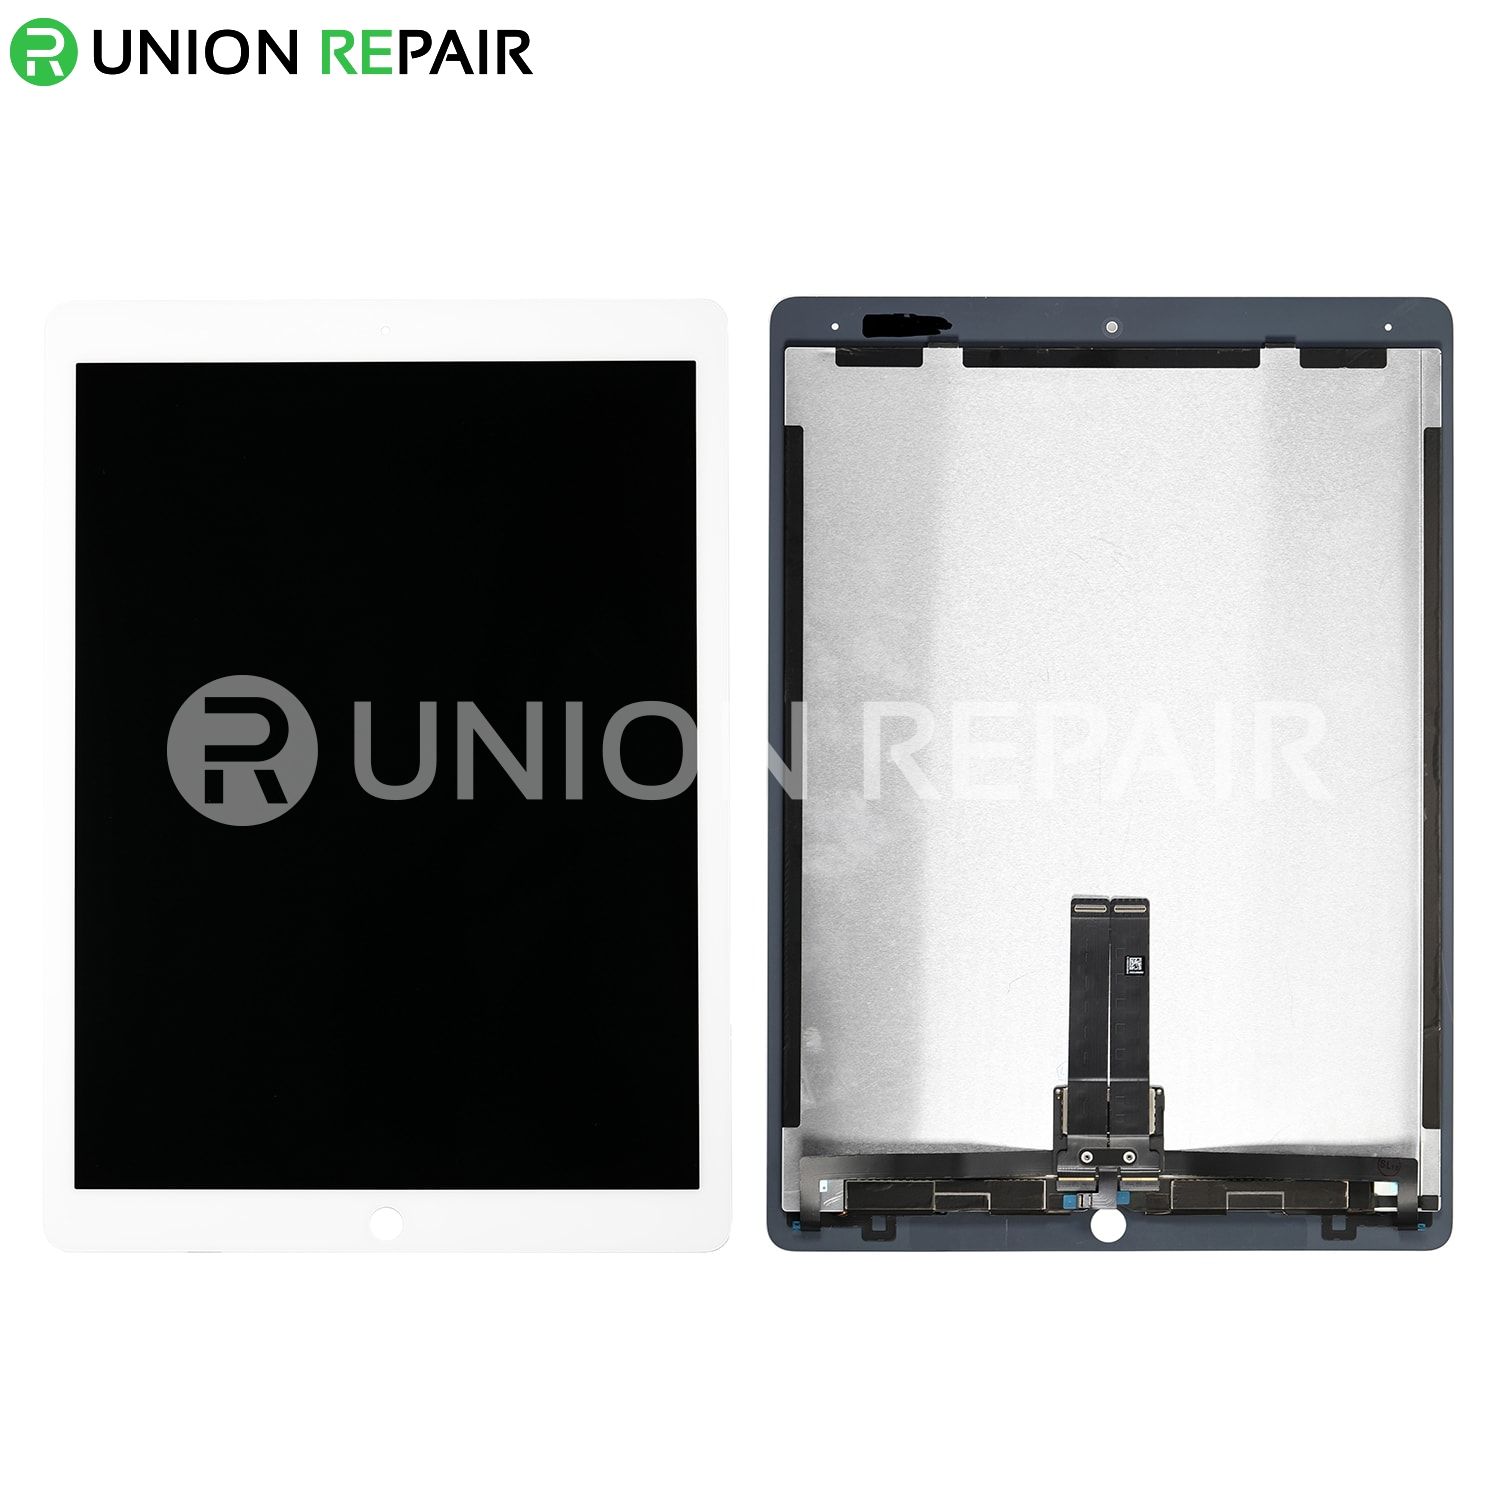 """Replacement for iPad Pro 12.9"""" 2nd Gen LCD Screen and Digitizer Assembly with Board Flex Soldered Complete - White"""